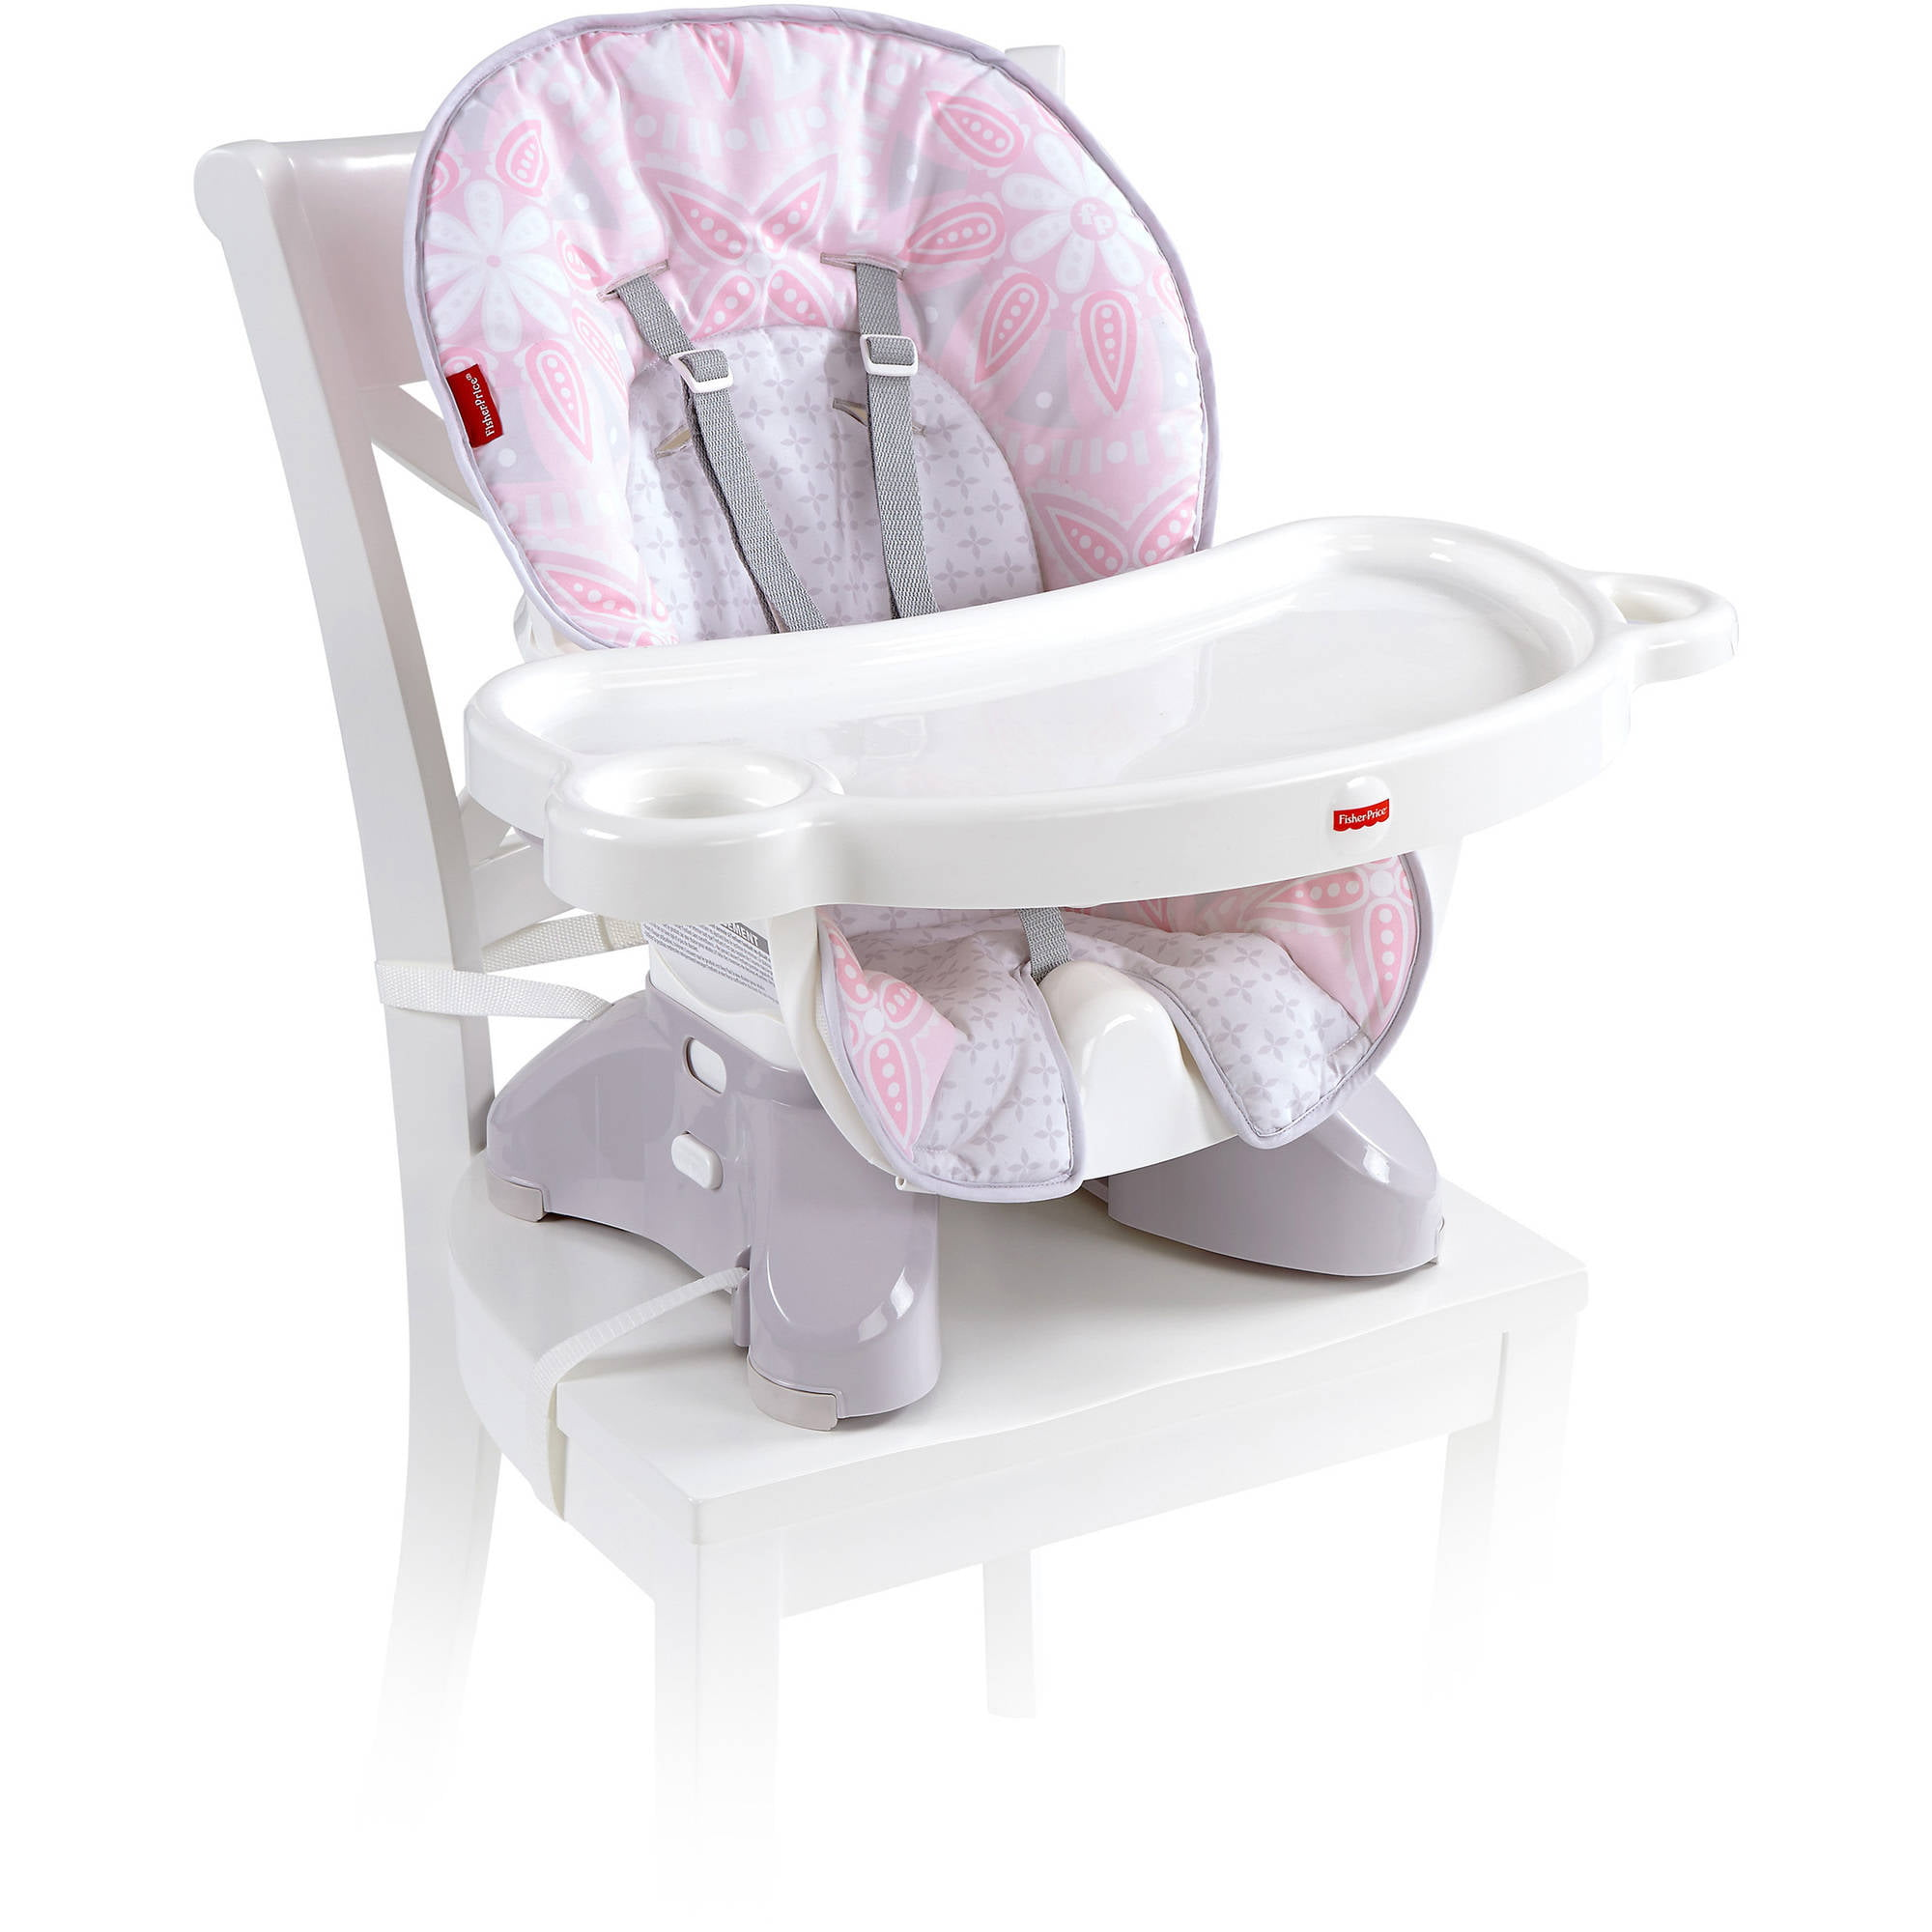 sc 1 st  Walmart & Fisher-Price SpaceSaver High Chair - Walmart.com